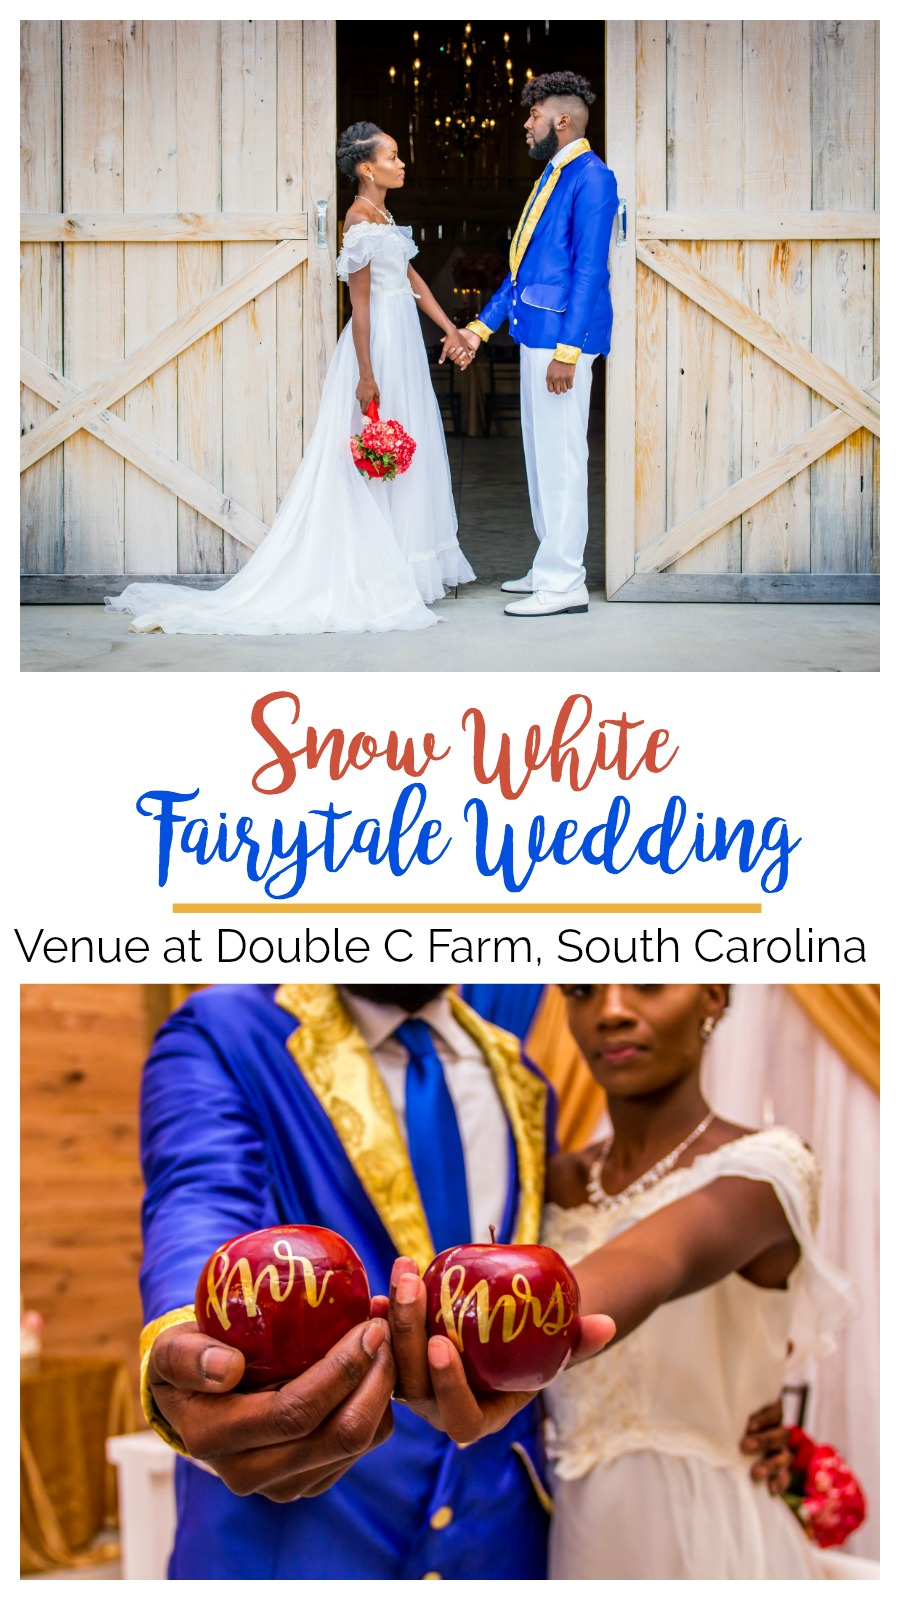 Wedding Inspiration: Fairytale Wedding Styled Shoot at the Venue at Double C Farm | Palmetto State Weddings | where to get married in Florence, South Carolina | Southern wedding inspiration | blue, red, gold weddings